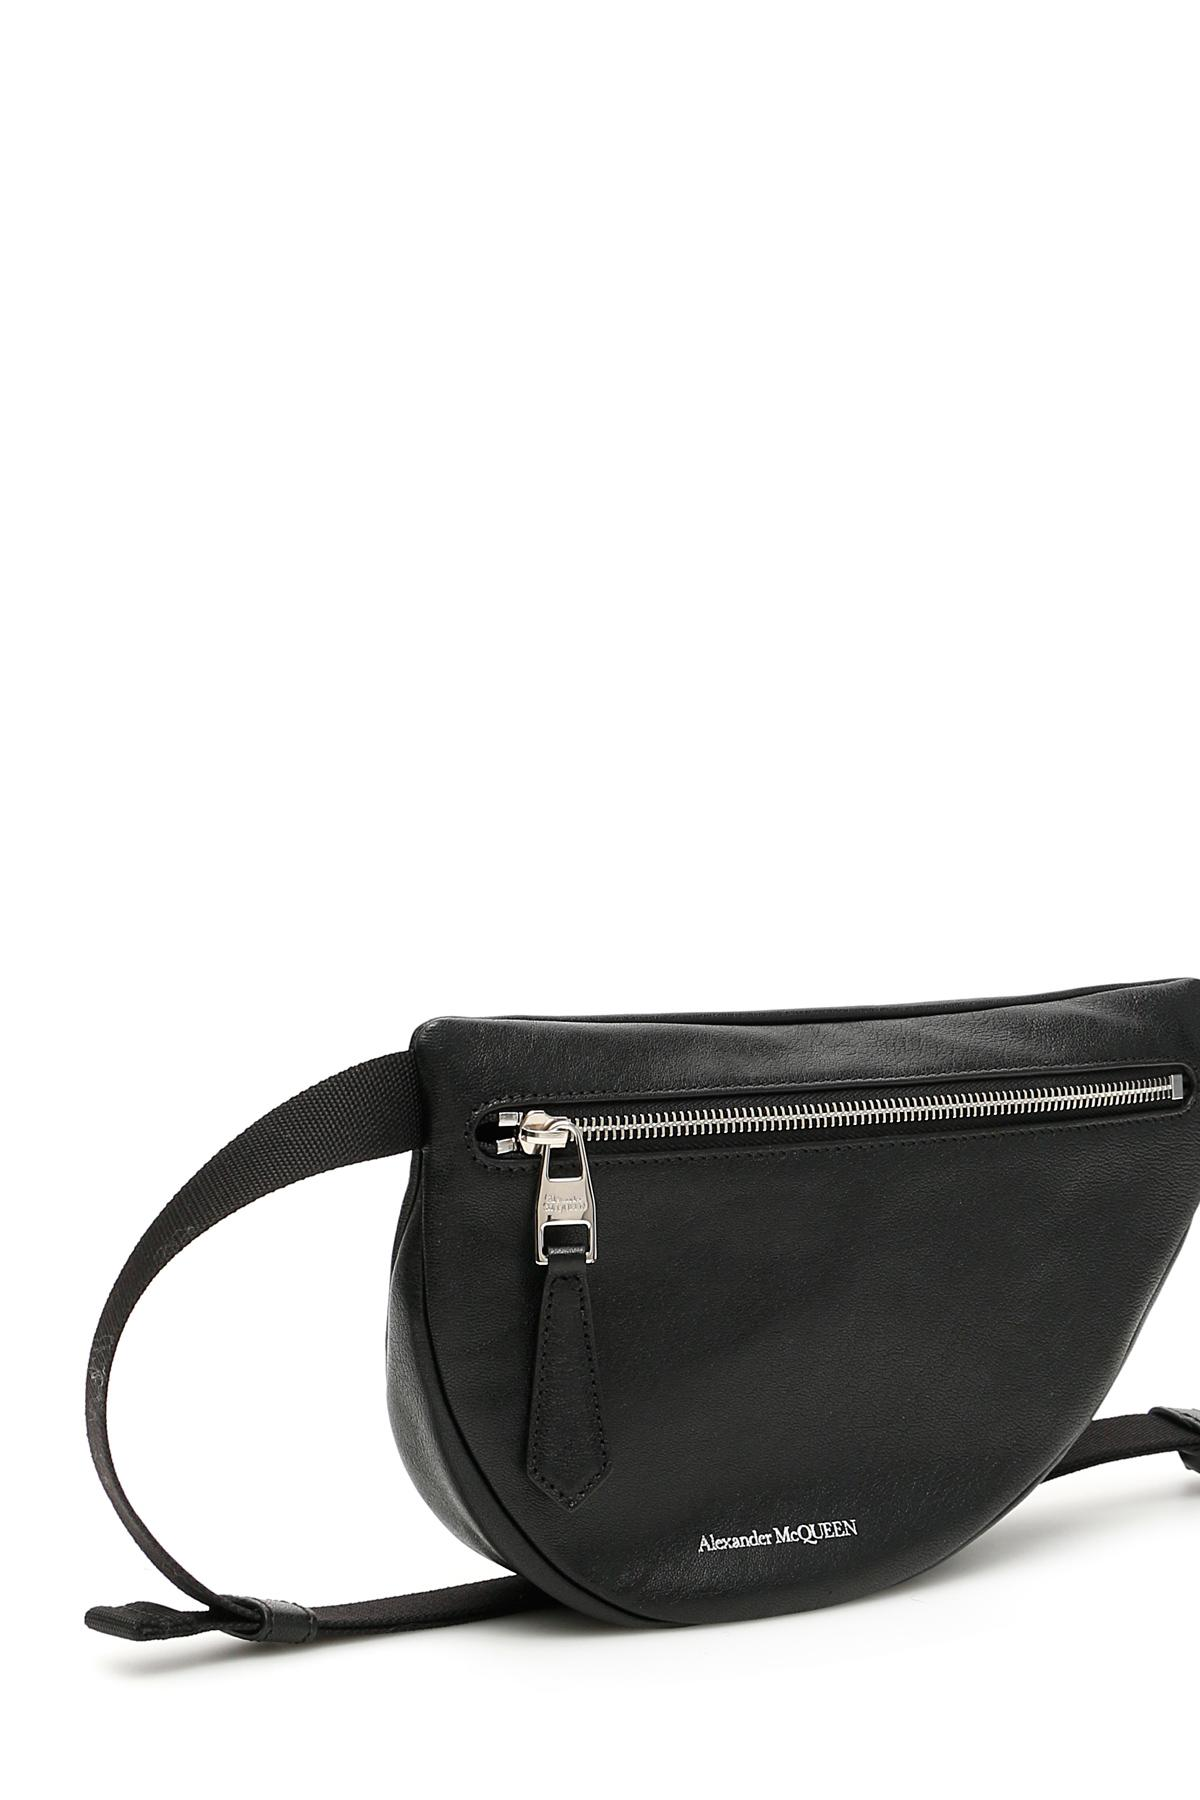 034f7a5a Alexander McQueen - Black Asymmetric Beltbag for Men - Lyst. View fullscreen